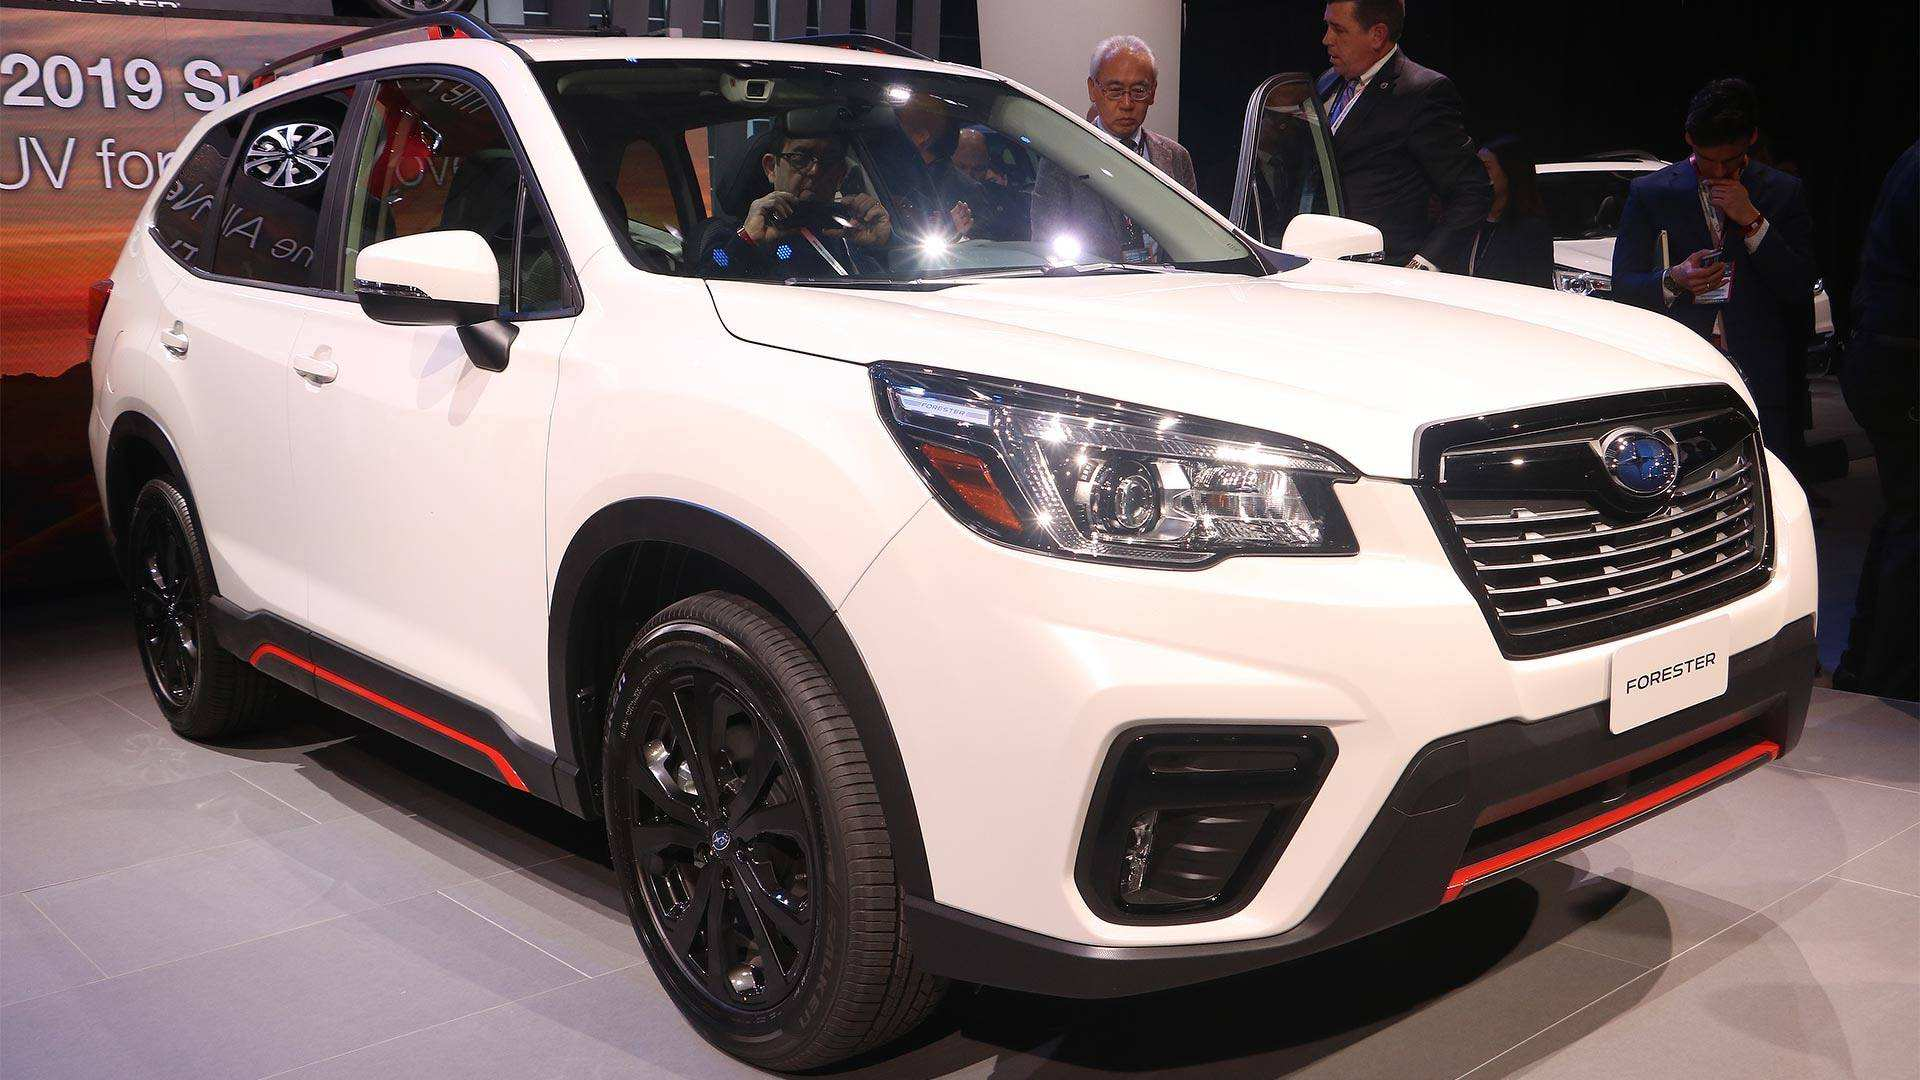 82 Concept of 2019 Subaru Forester Manual First Drive for 2019 Subaru Forester Manual